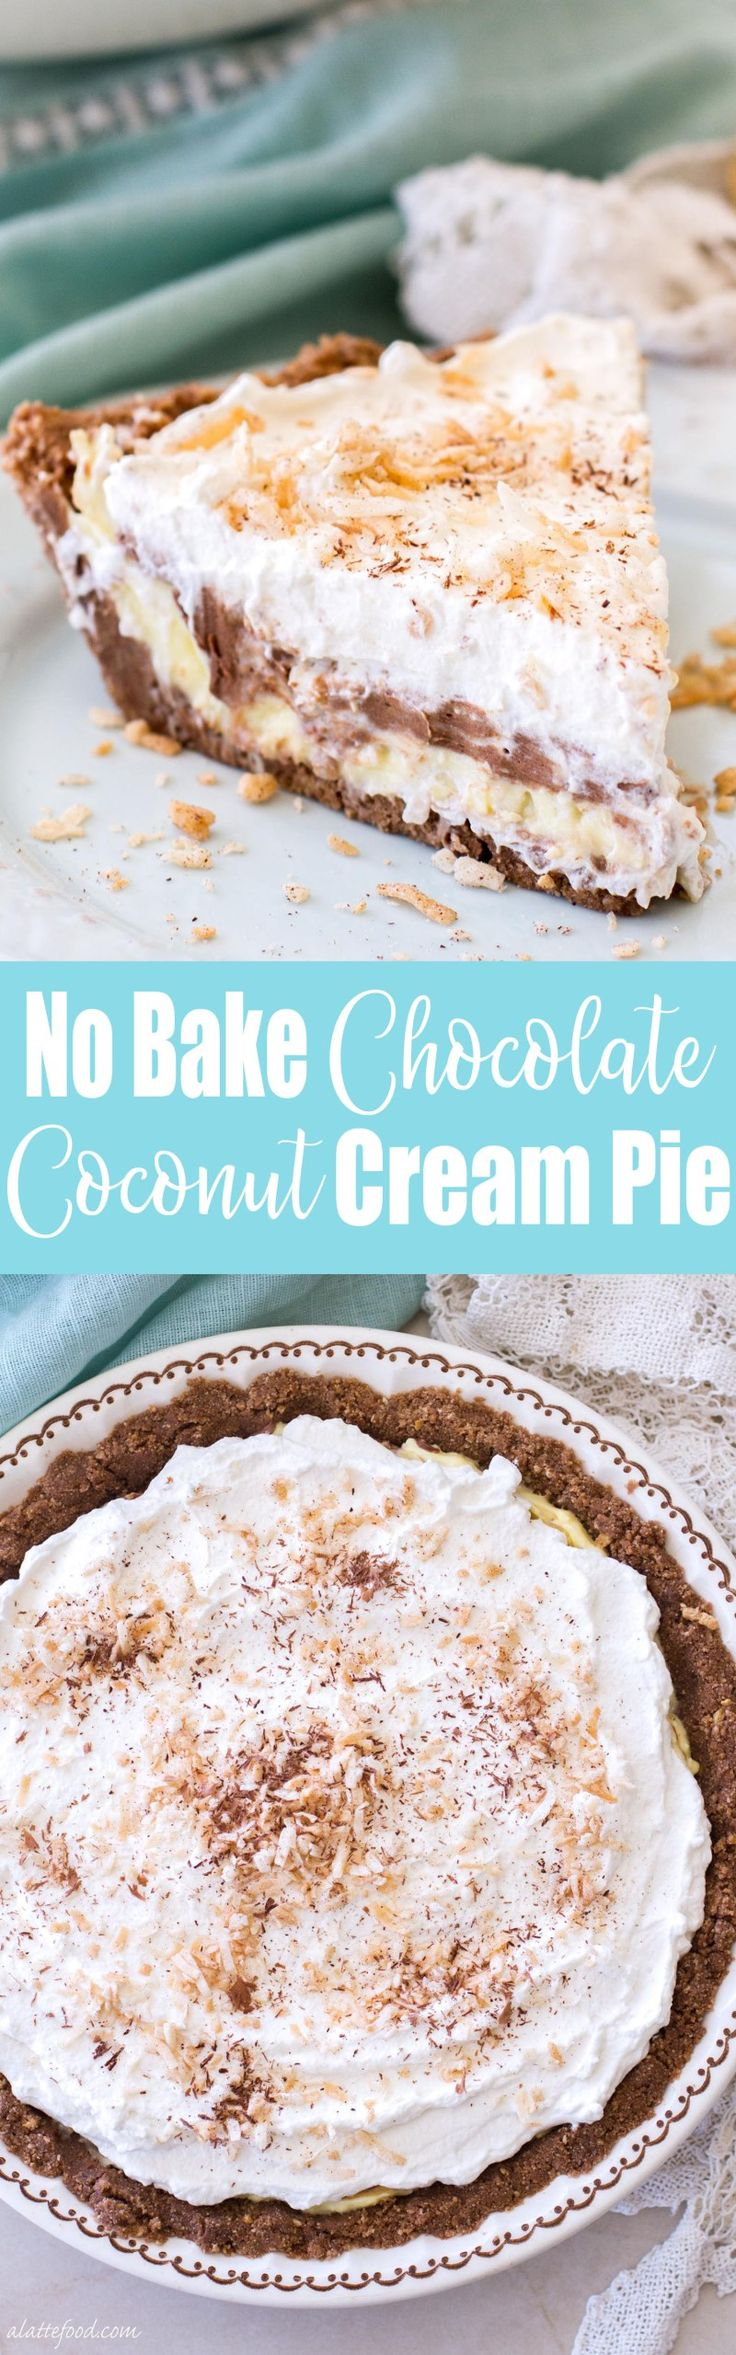 This easy, no-bake chocolate coconut cream pie recipe is the perfect summer dessert! Whipped cream, chocolate cream,and coconut cream are layered on top of a Keebler cookie crust! It's glorious.